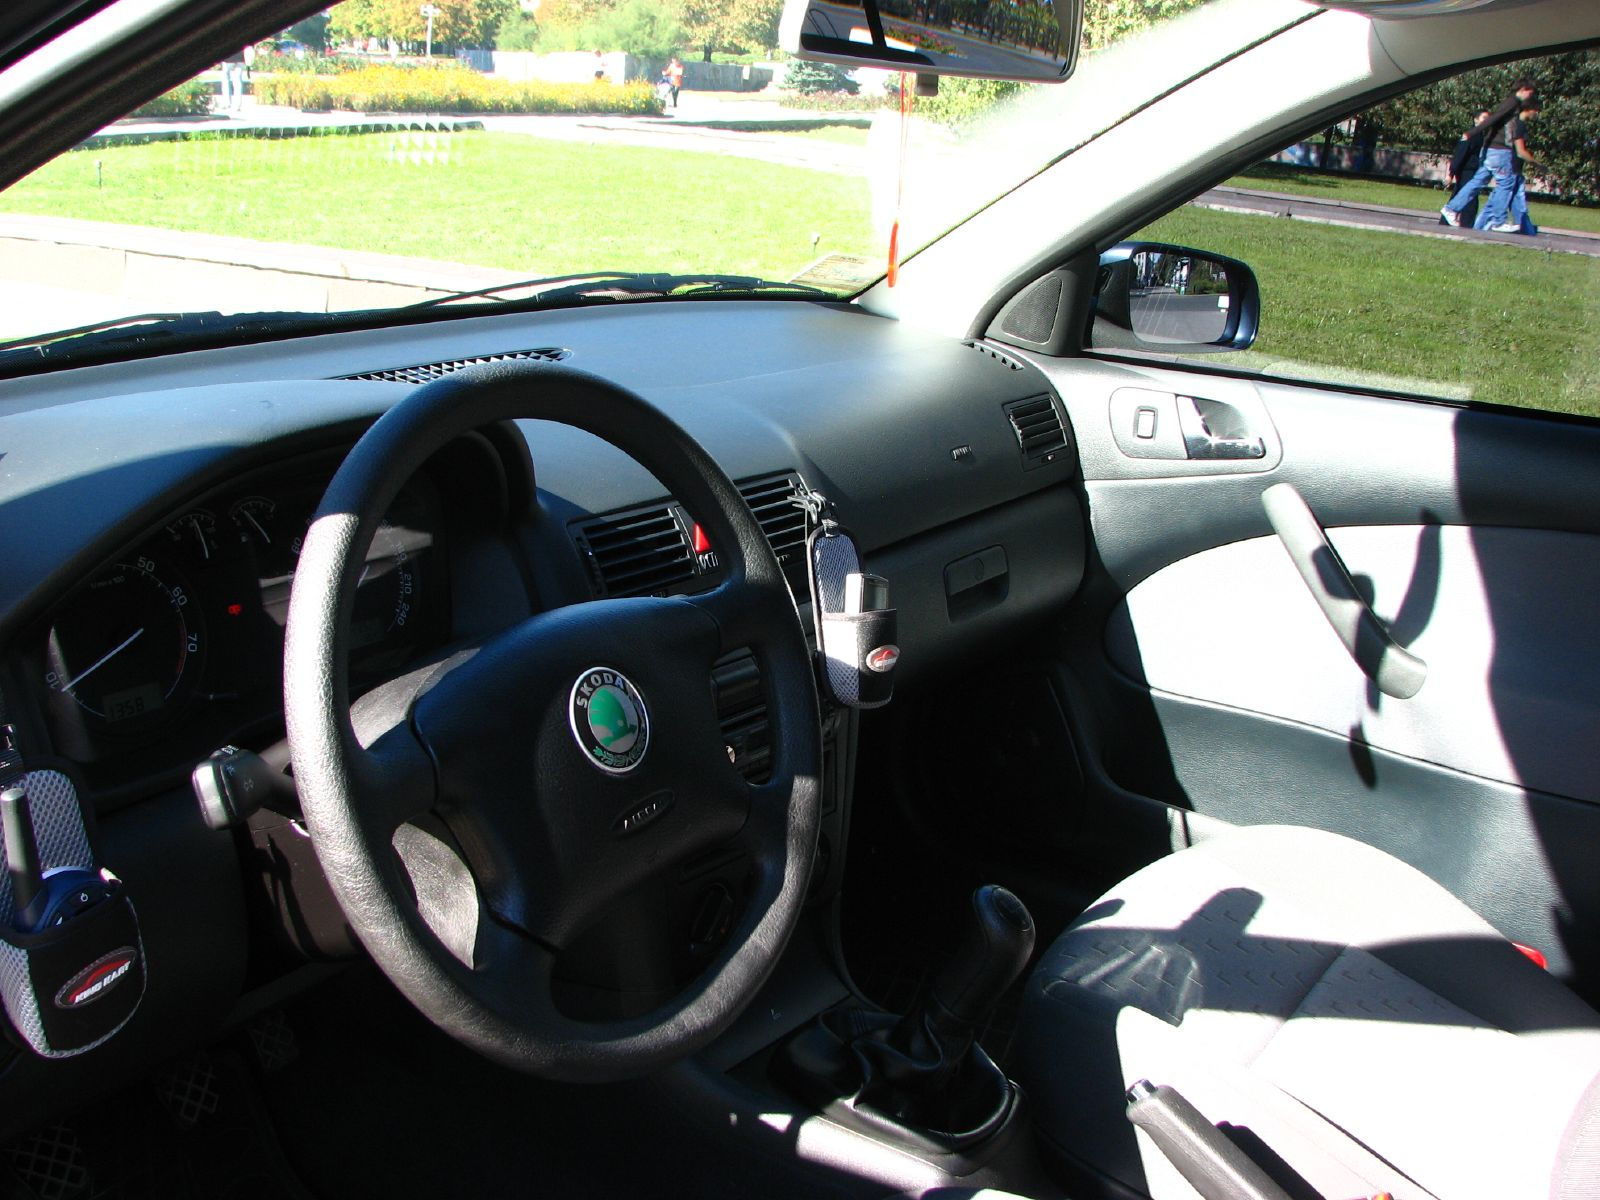 File:Škoda Octavia interior.jpg - Wikimedia Commons